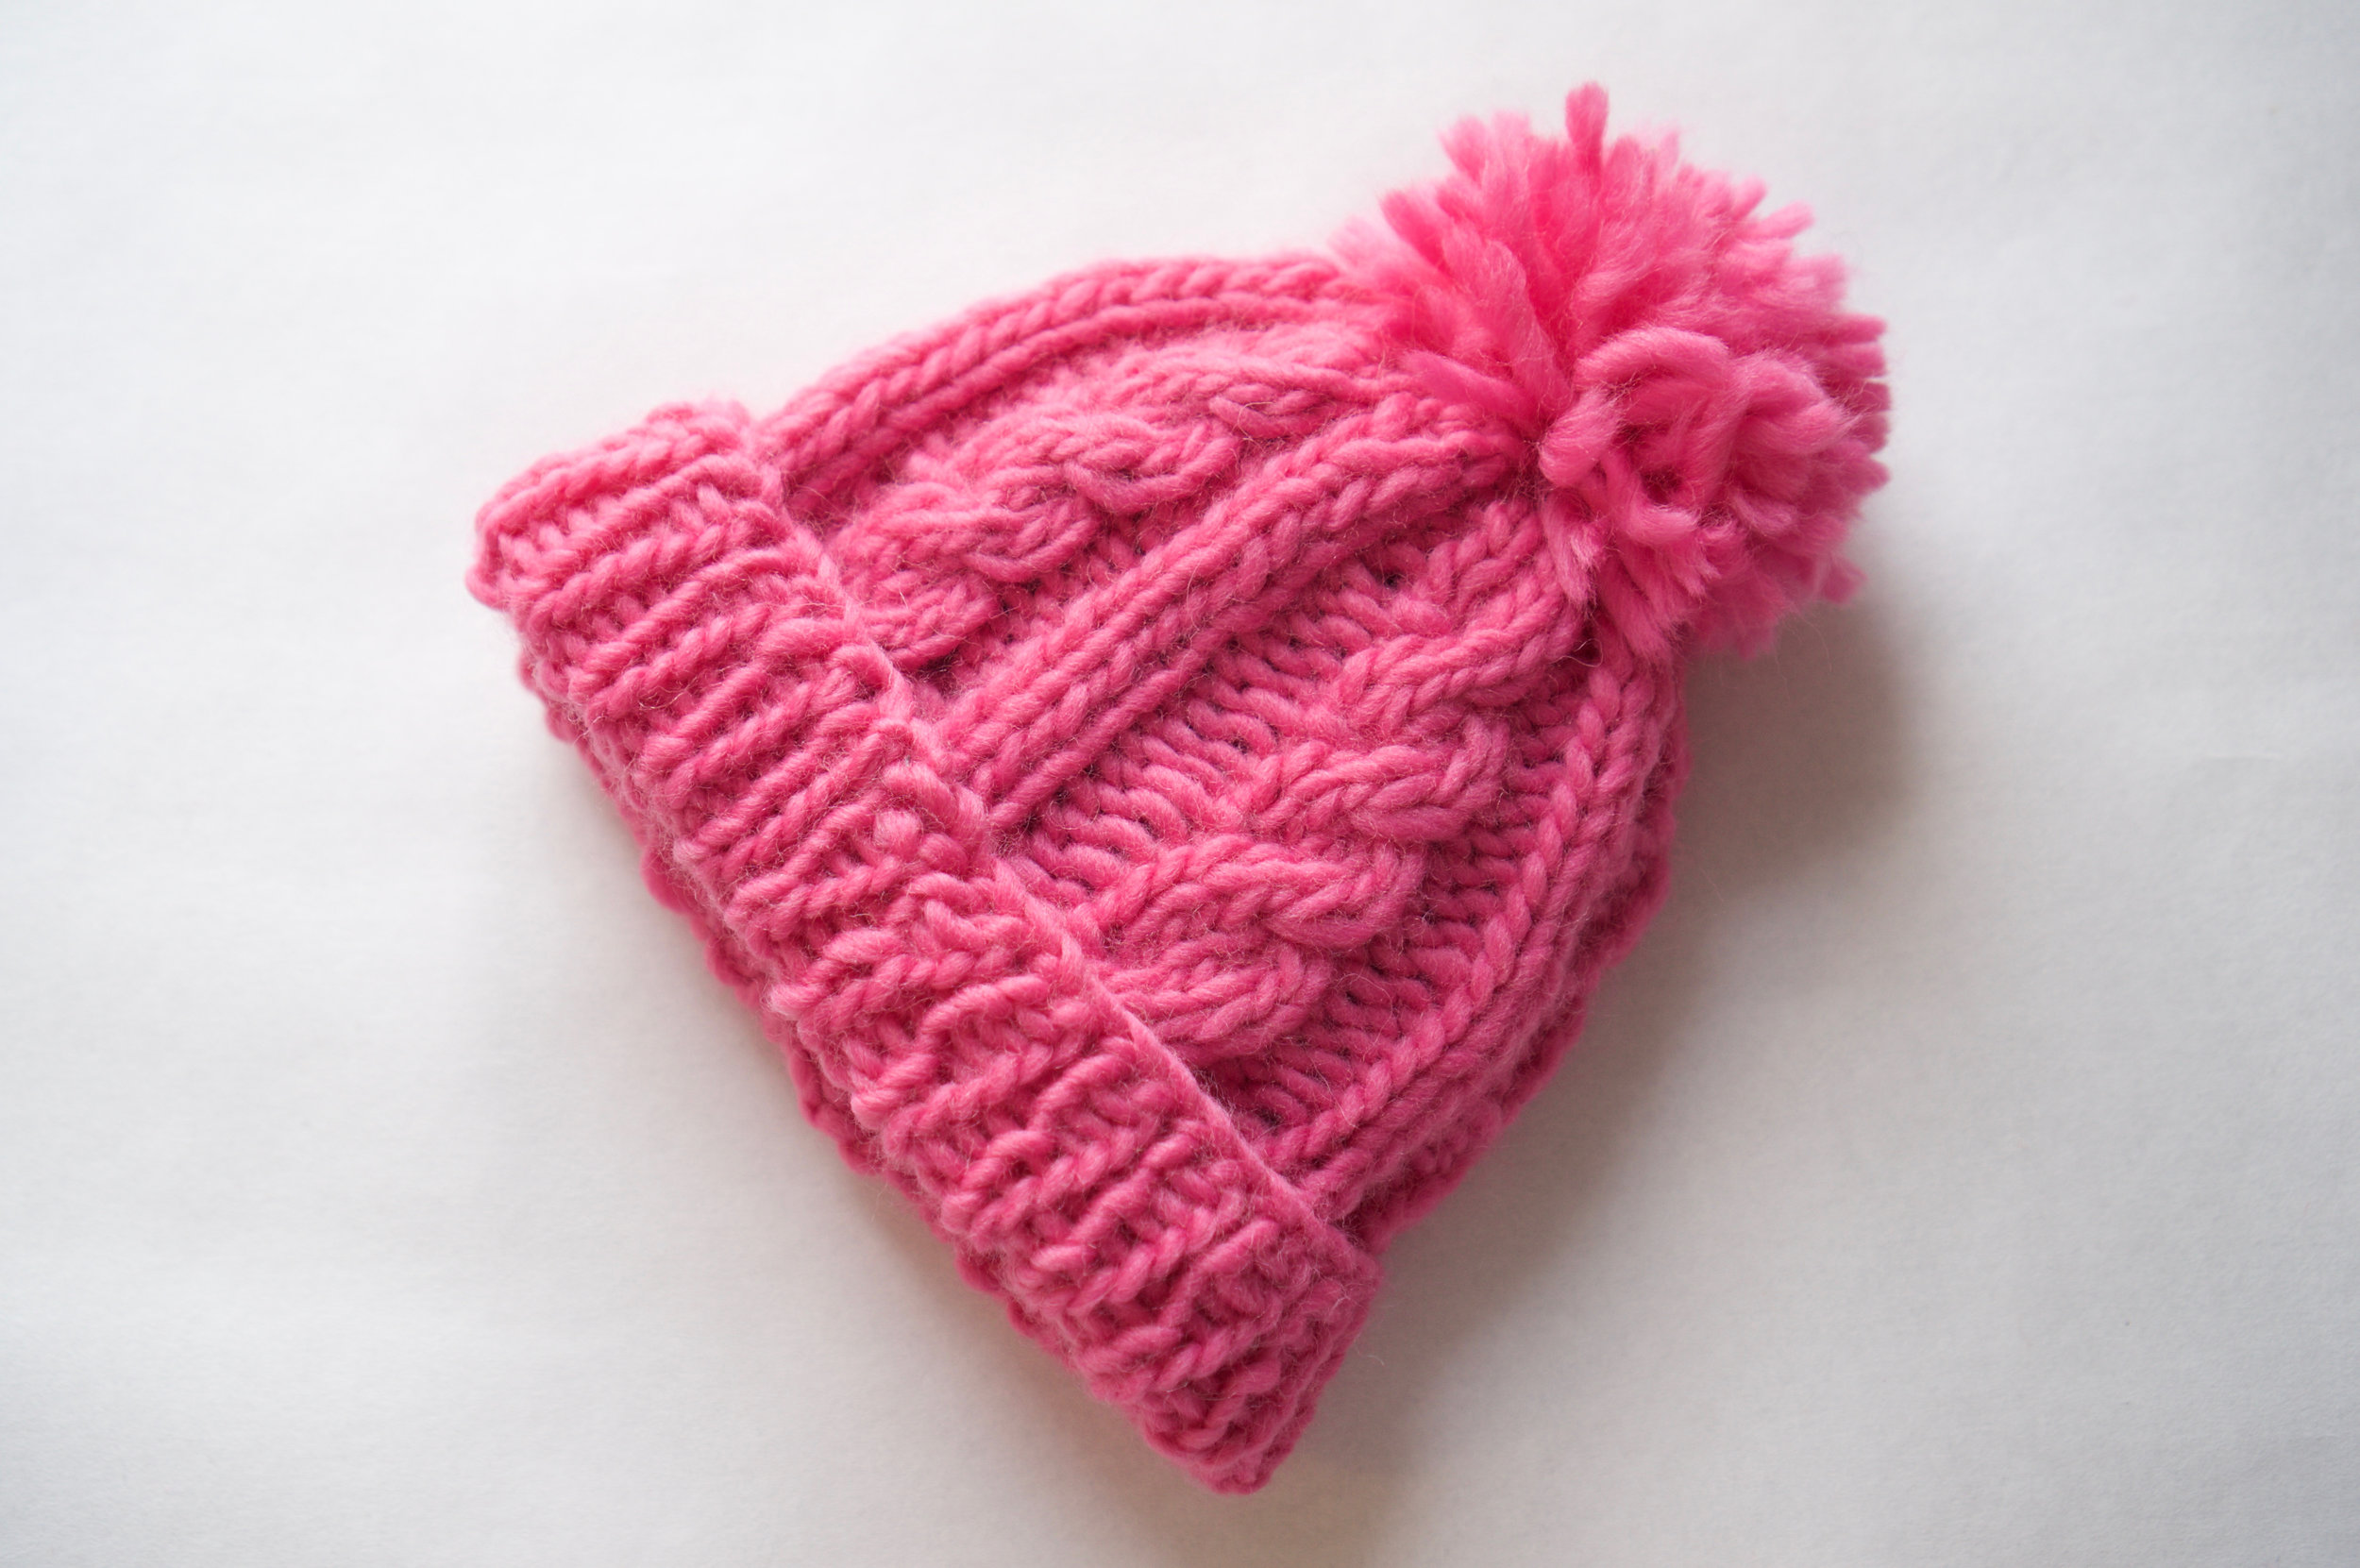 No-fuss Cable Beanie - $4.99